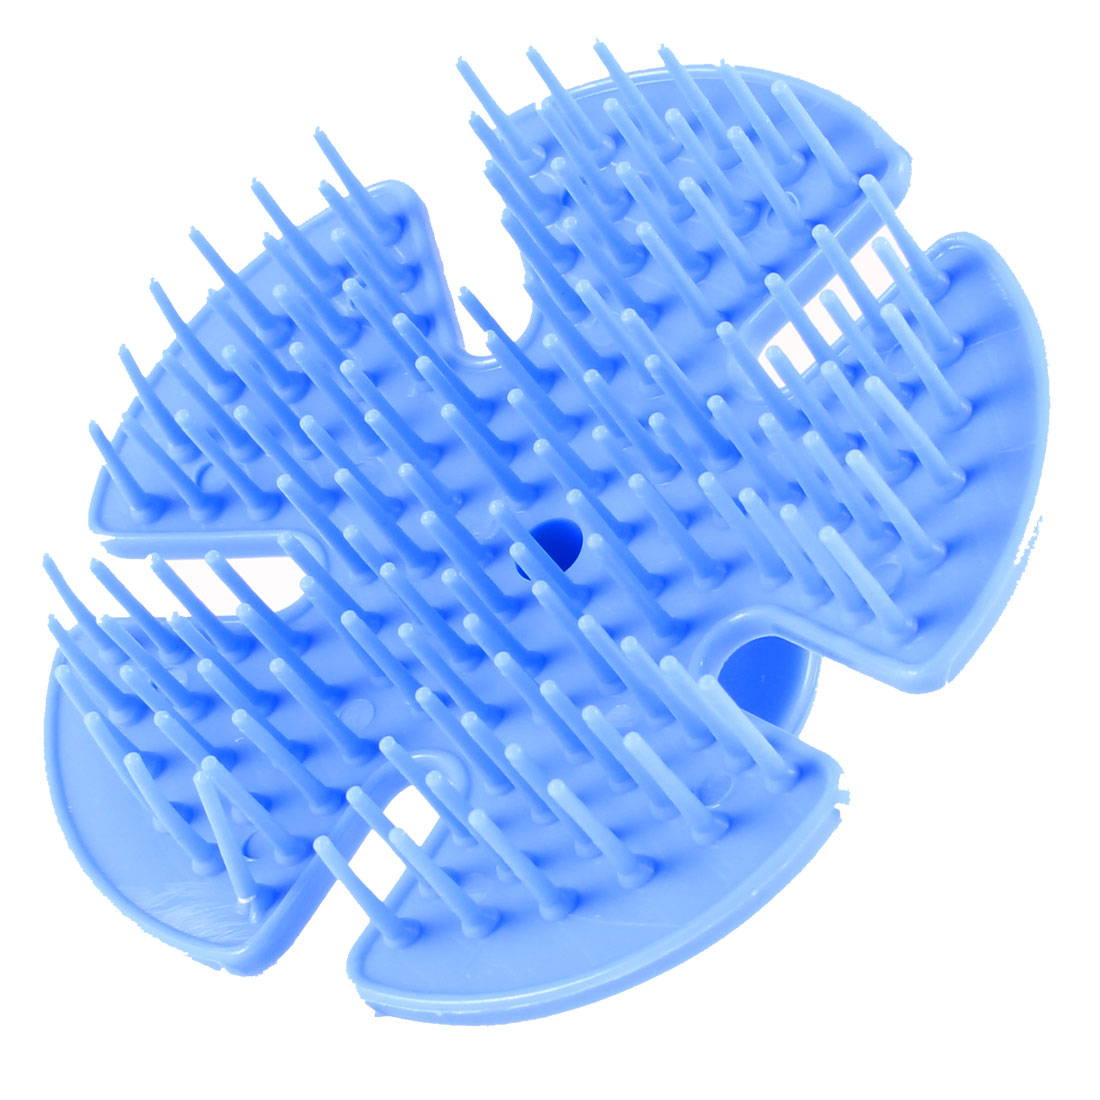 Salon Blue Round Plastic Grip Hair Scalp Shampoo Brushes Massager